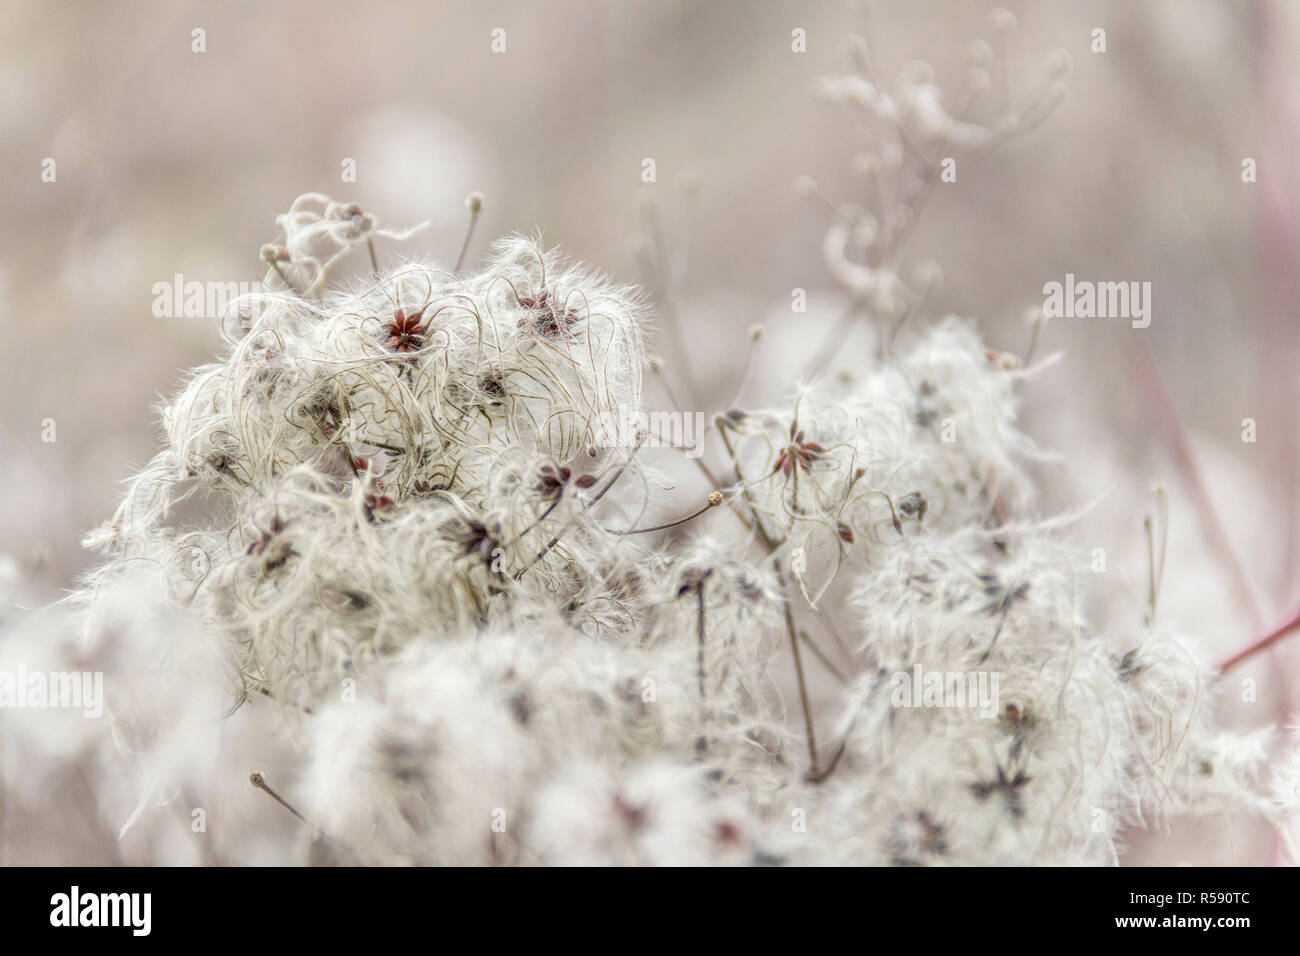 fluffy seed closeup - Stock Image